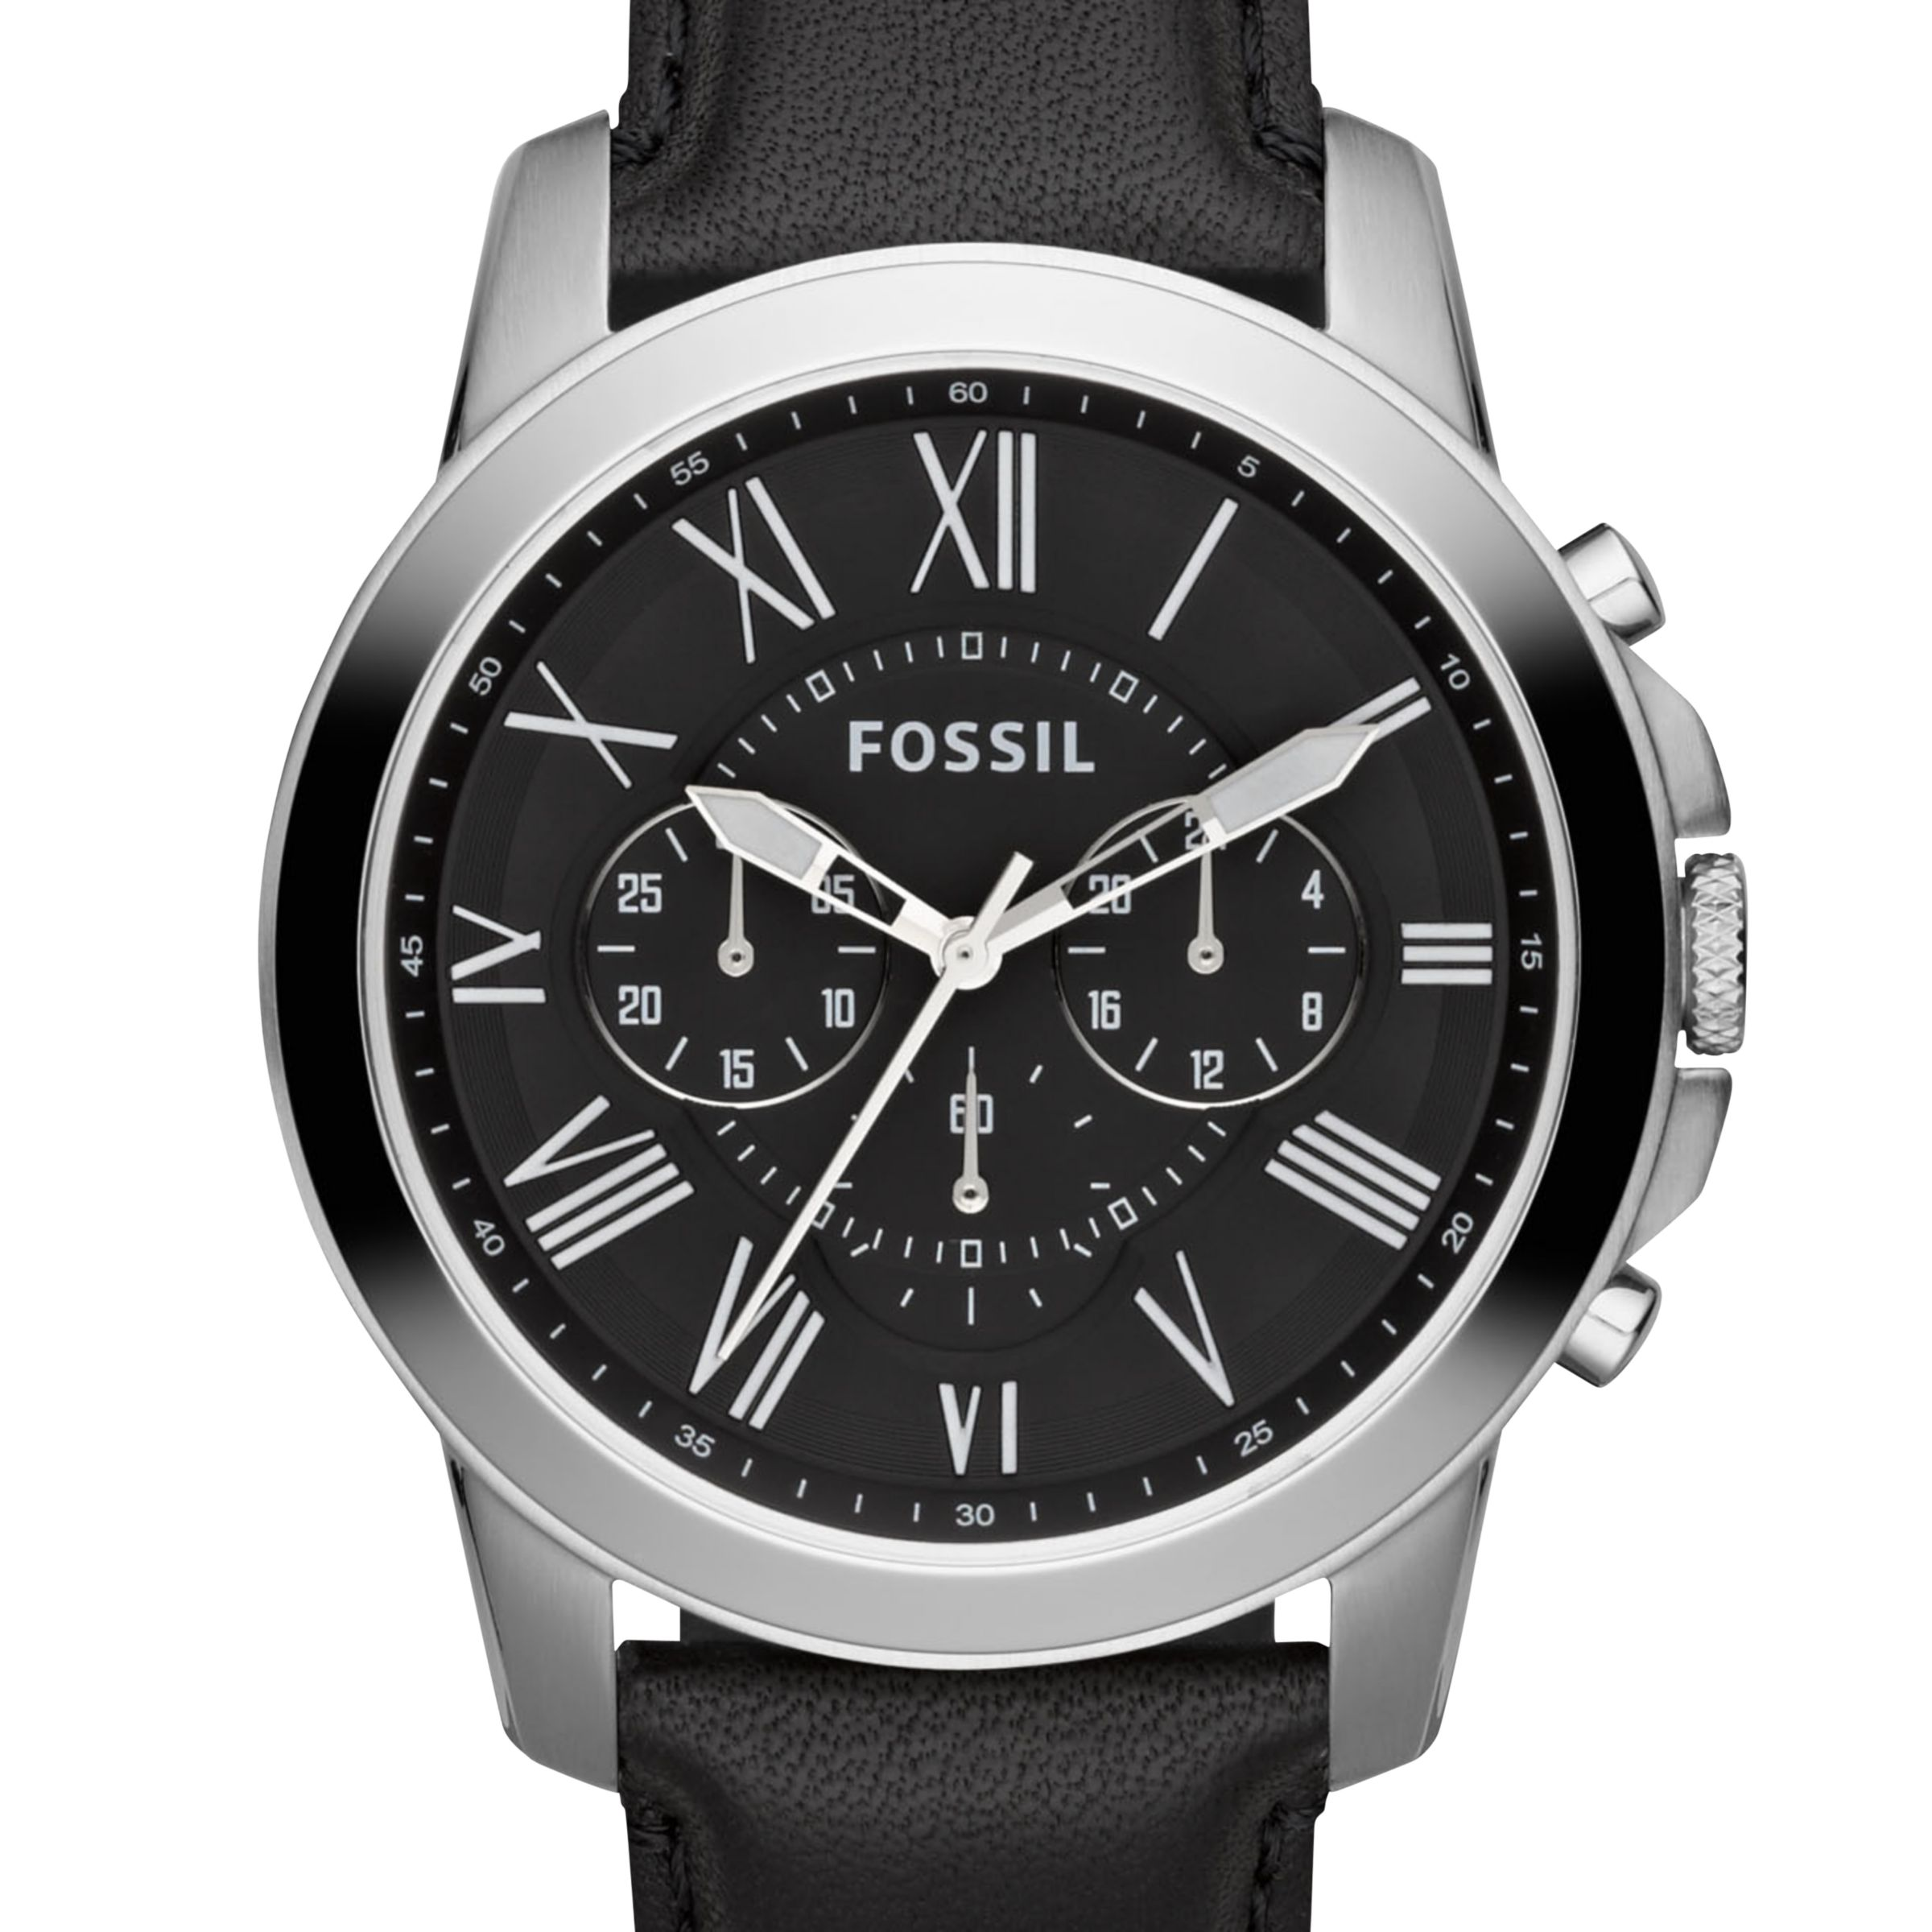 fc0664247 Fossil FS4812 Men's Grant Chronograph Leather Strap Watch, Black at John  Lewis & Partners